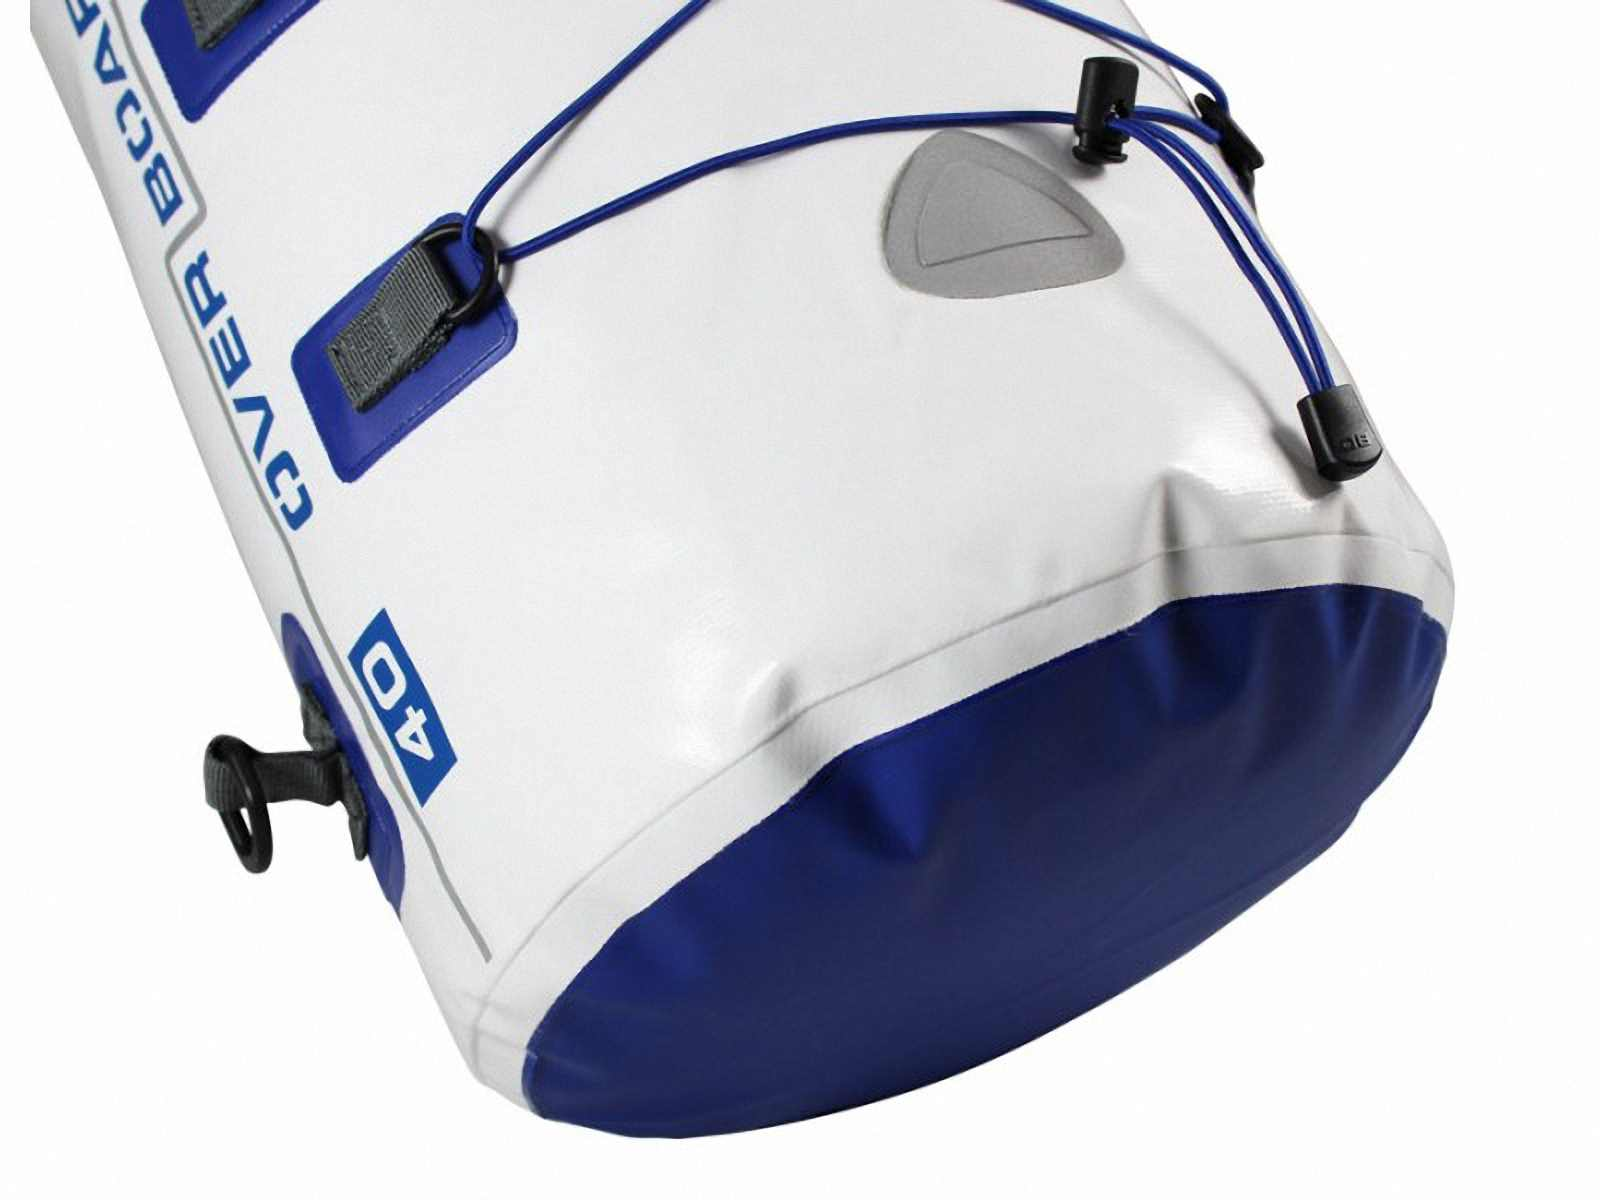 Водонепроницаемый рюкзак OverBoard OB1017WHT - Waterproof Boat Master Dry Tube - 40 Litres. Фото 3